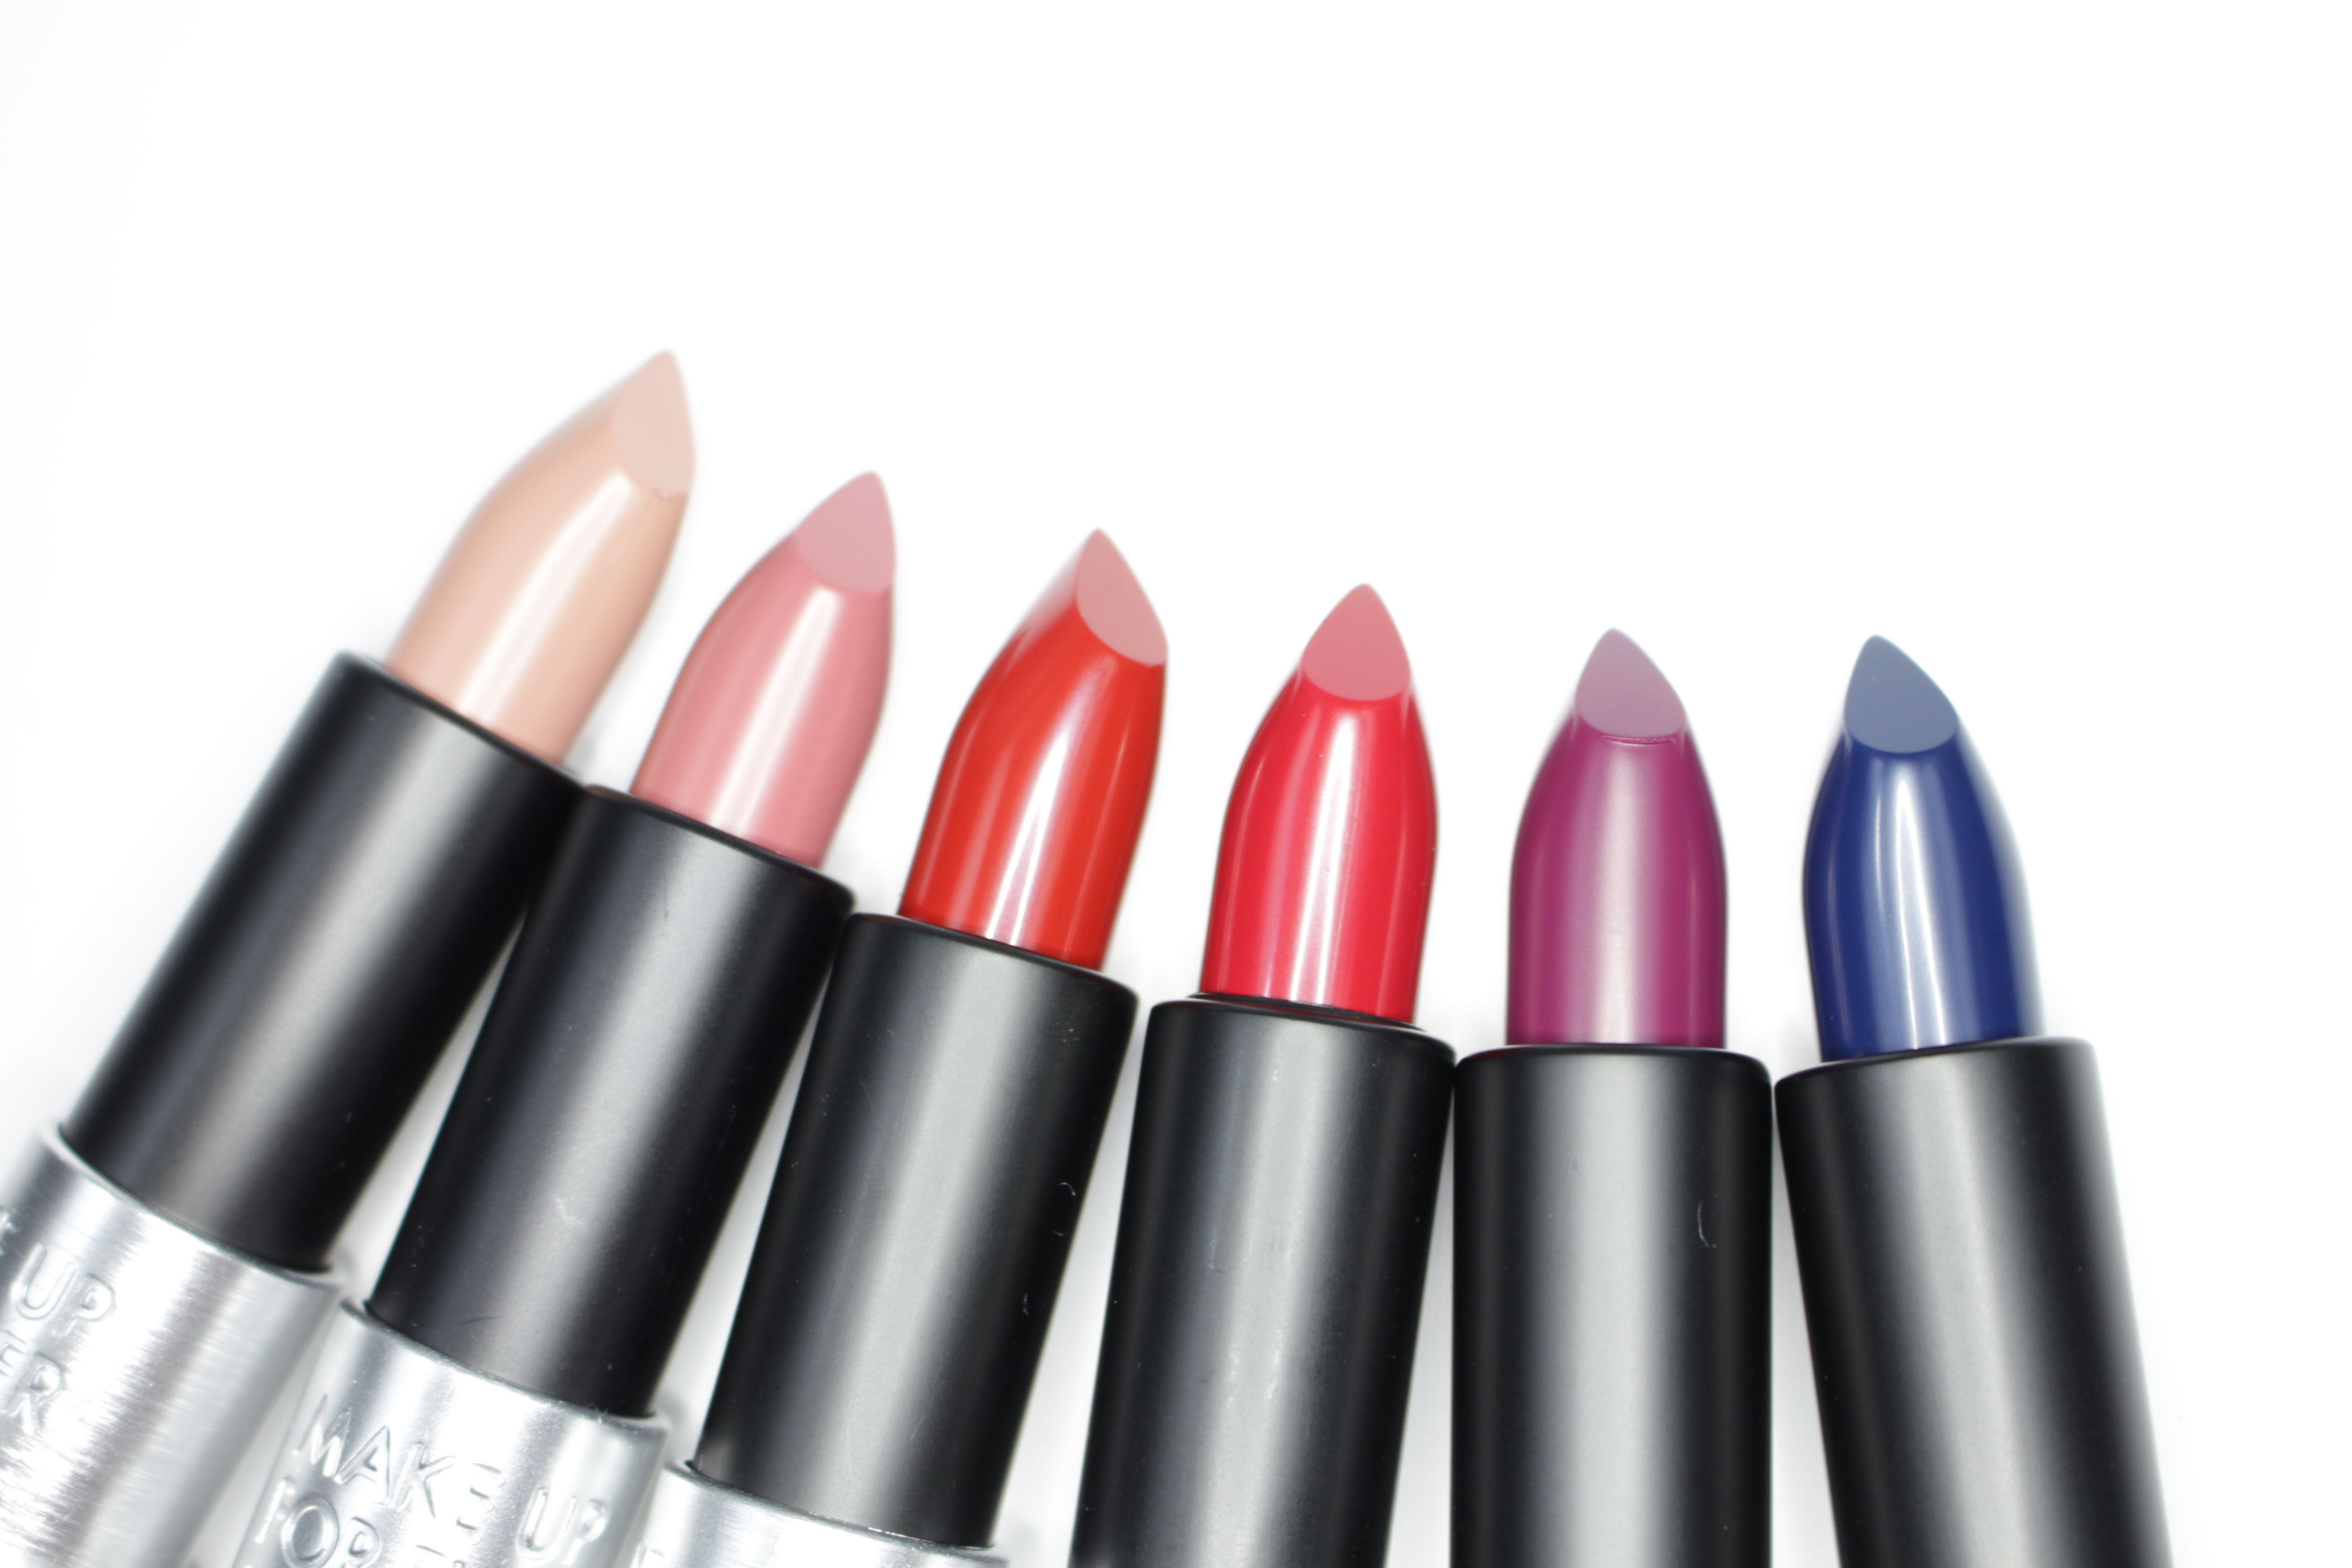 Make Up For Ever New Artist Rouge Lipsticks. Review and